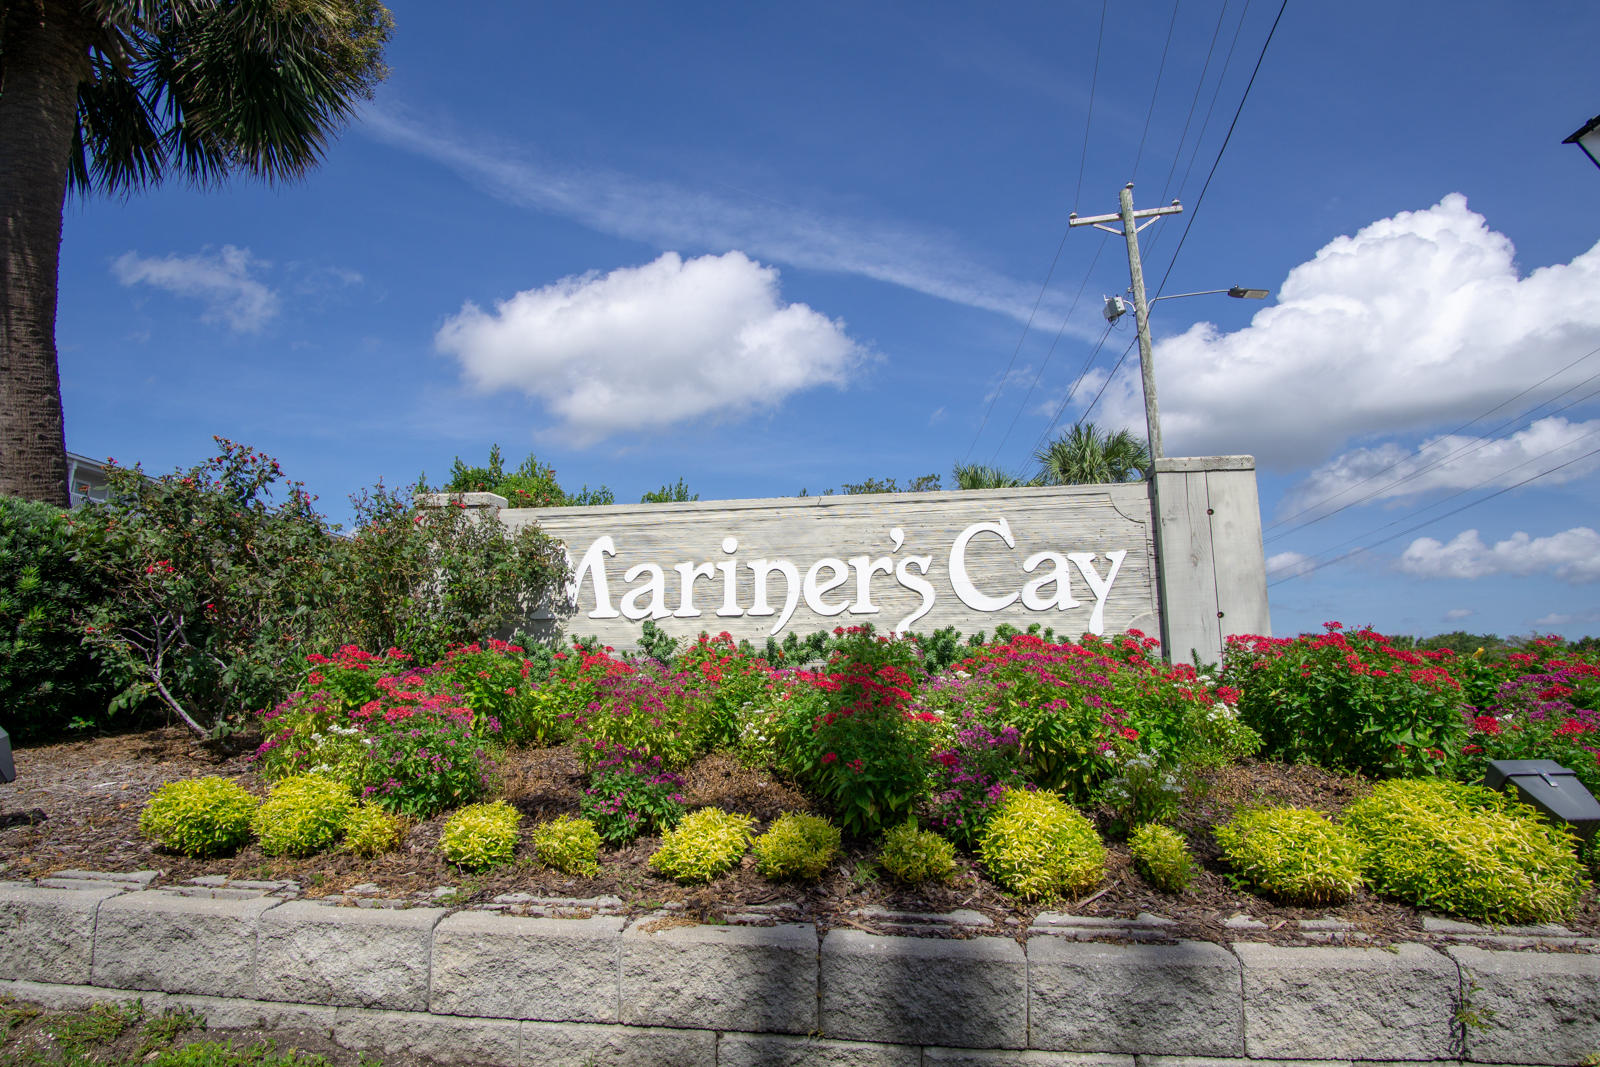 Mariners Cay Homes For Sale - 105 Mariners Cay, Folly Beach, SC - 0